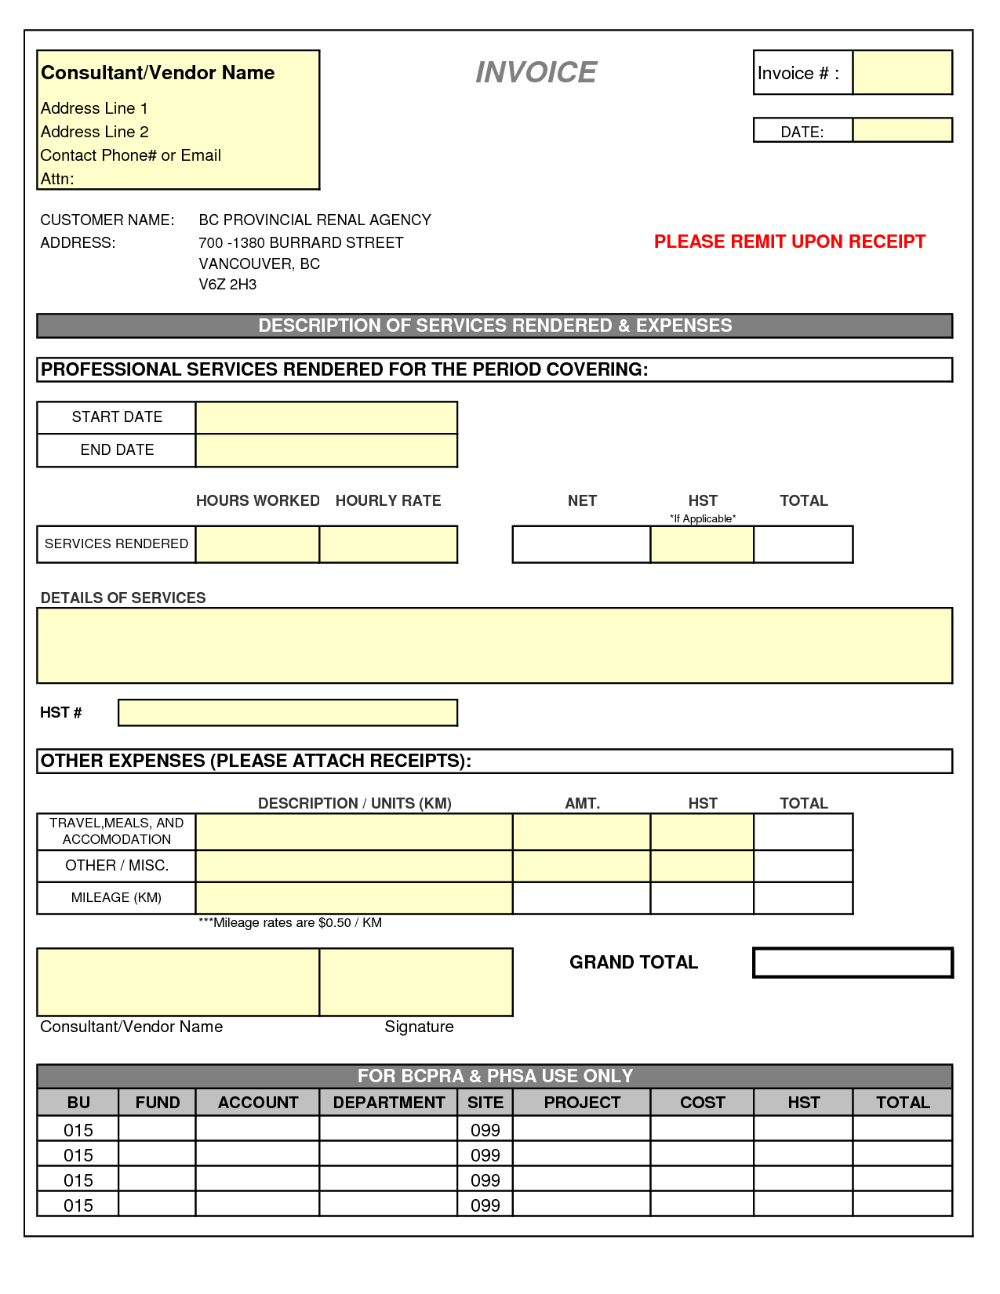 Excel Invoice Template 2007 from i.pinimg.com